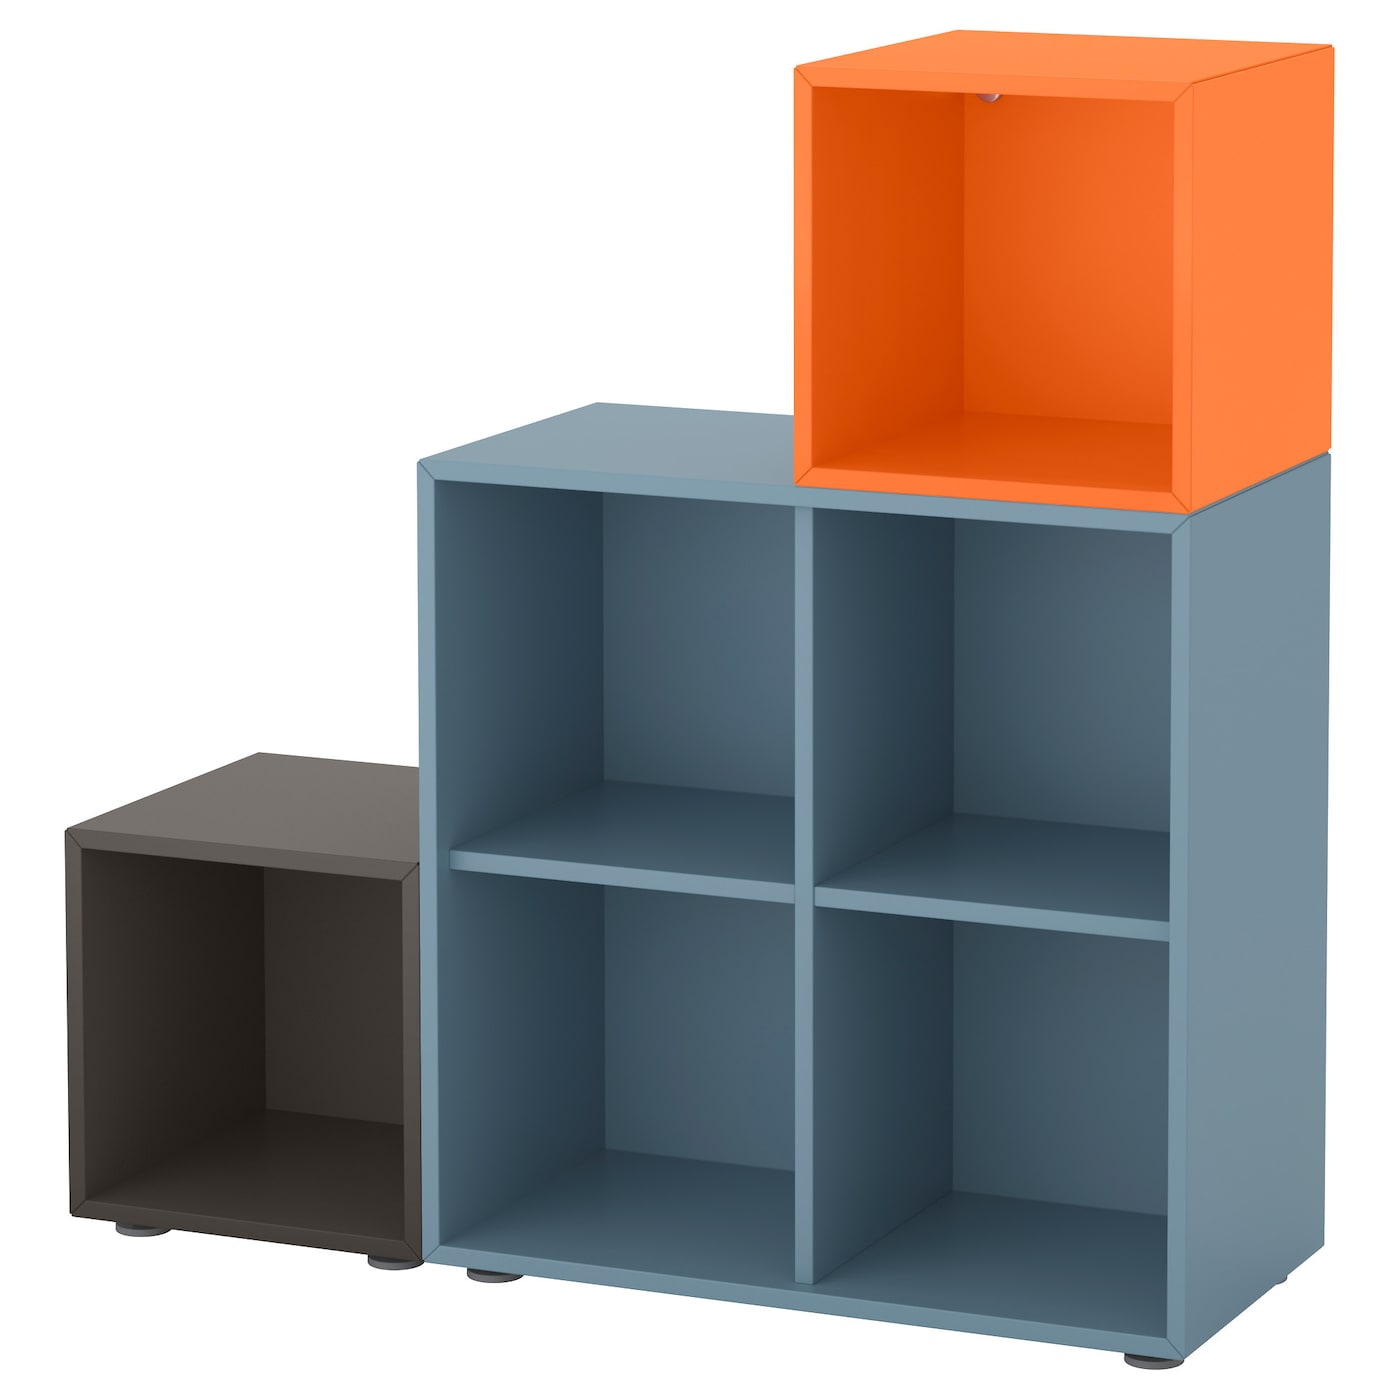 Blue Bookcase eket cabinet combination with feet light blue/dark grey/orange